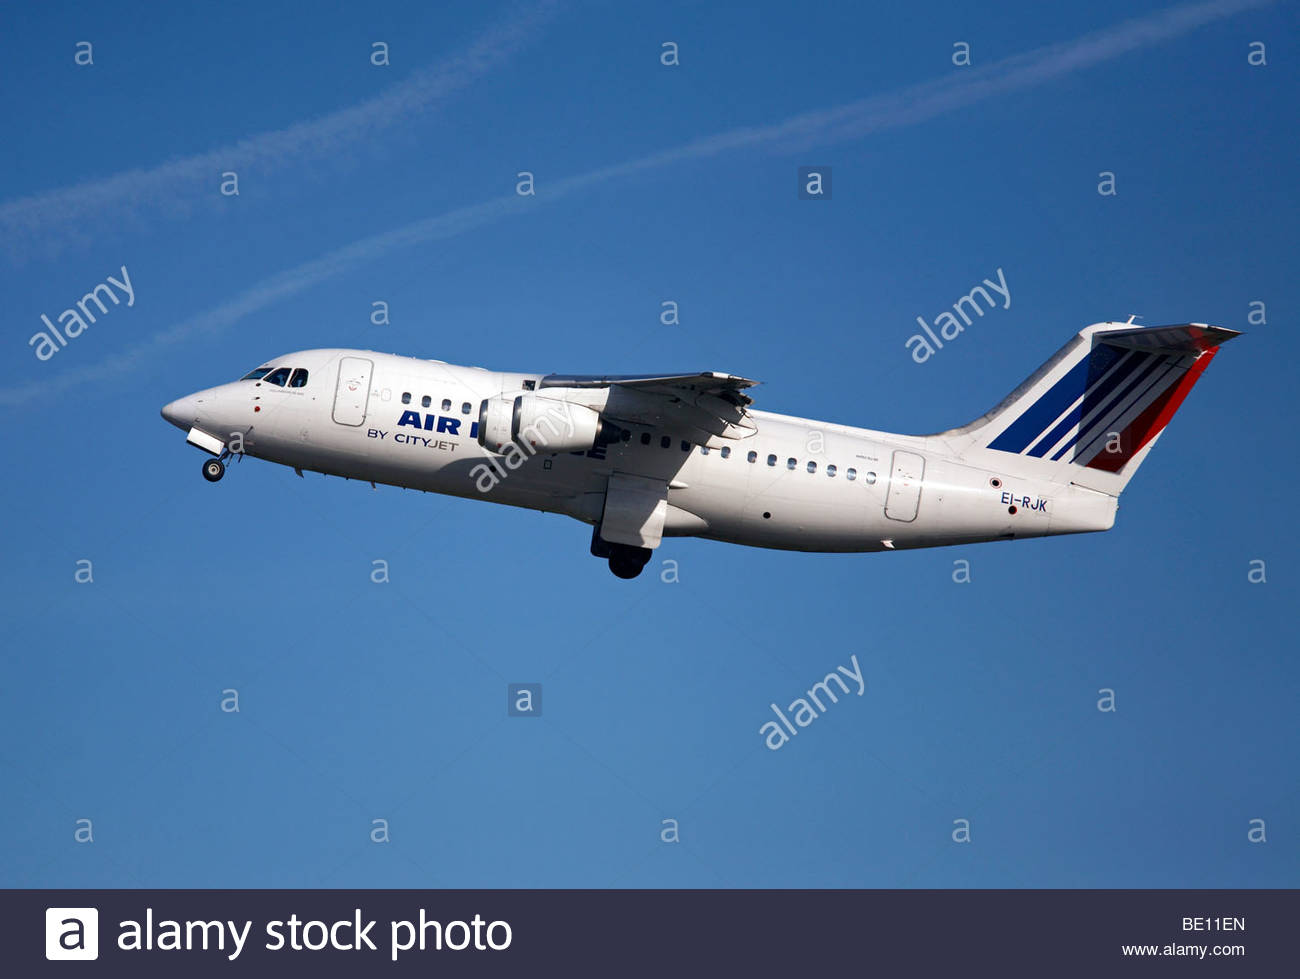 Air France Cityjet flight shortly after takeoff - Stock Image